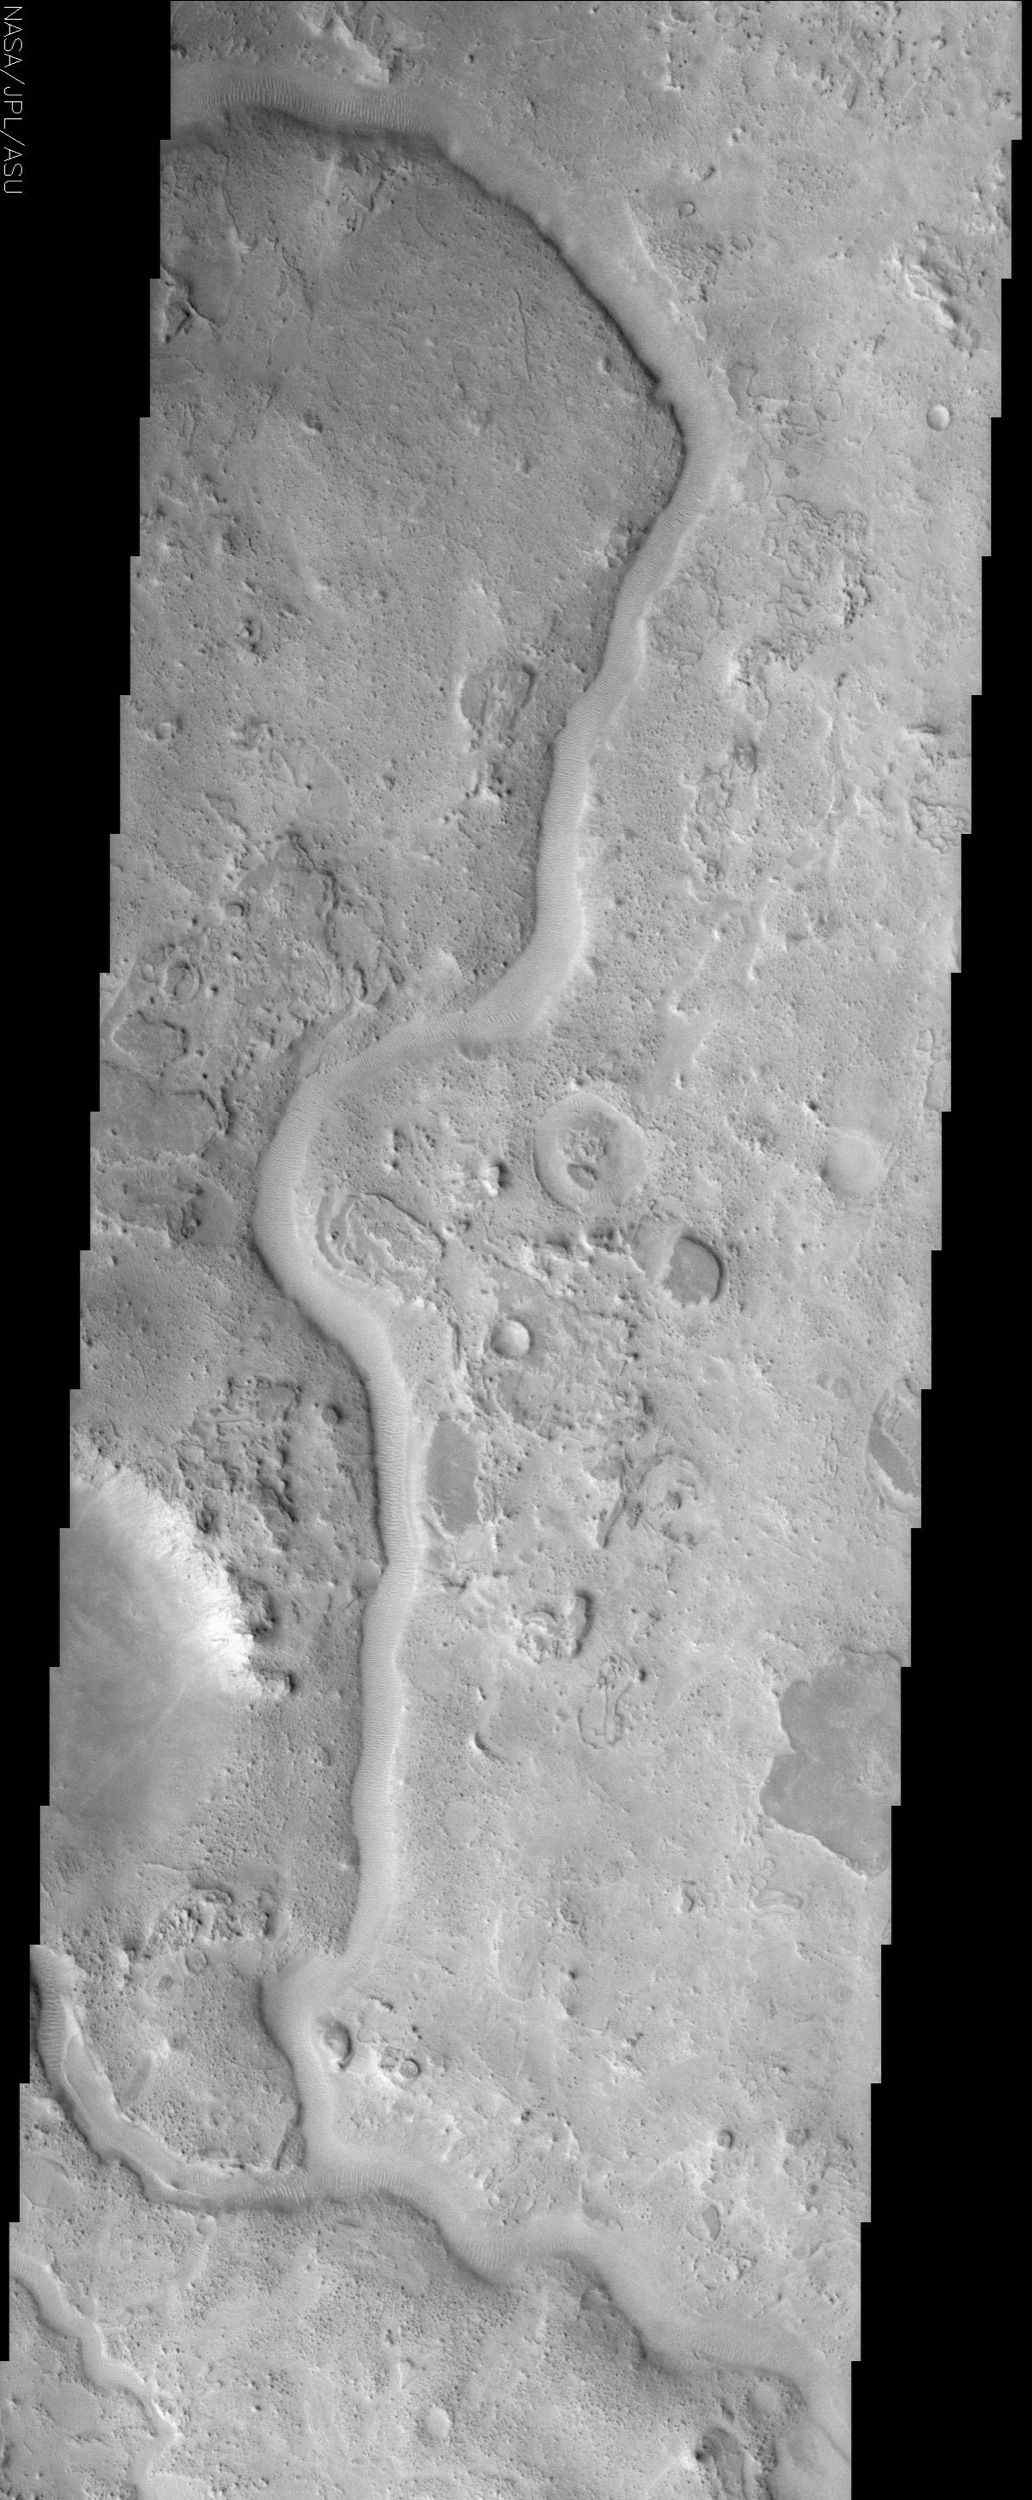 The ancient sinuous river channel shown in this image by NASA's Mars Odyssey spacecraft was likely carved by water early in Mars history. Auqakuh Valles cuts through a remarkable series of rock layers that were deposited and then subsequently eroded.